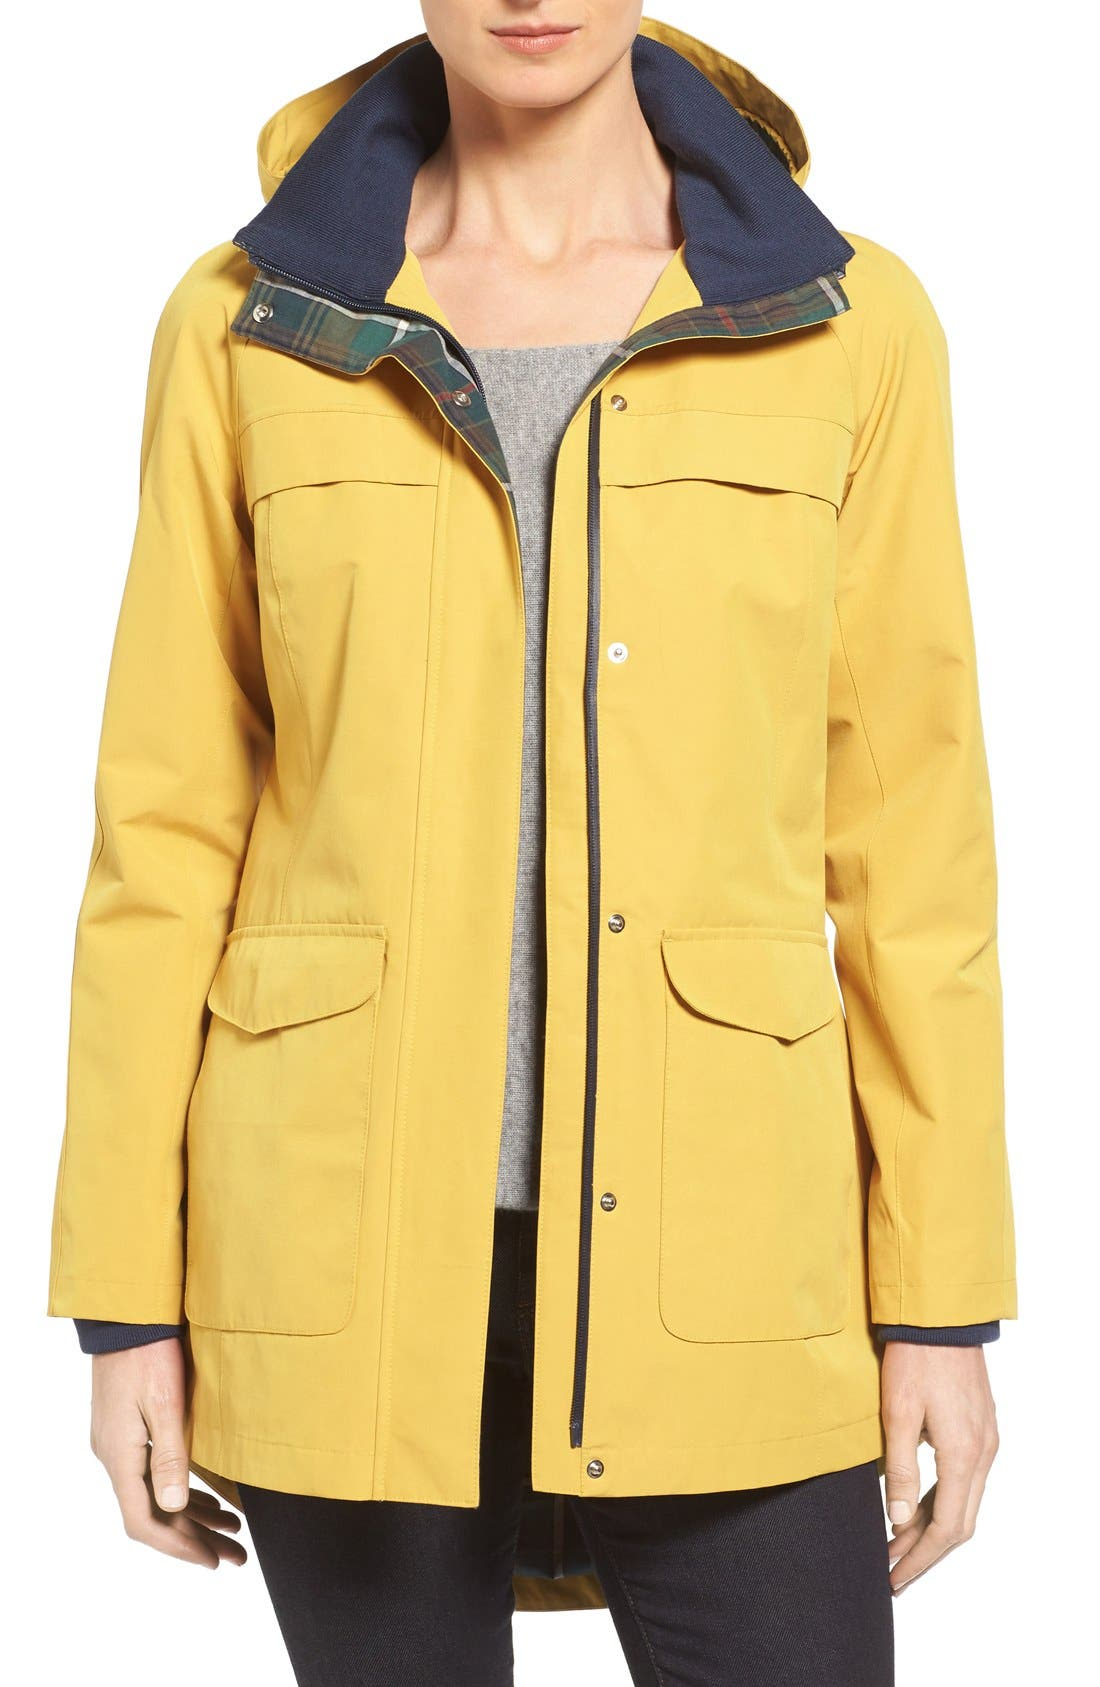 Pendleton Hooded Raincoat